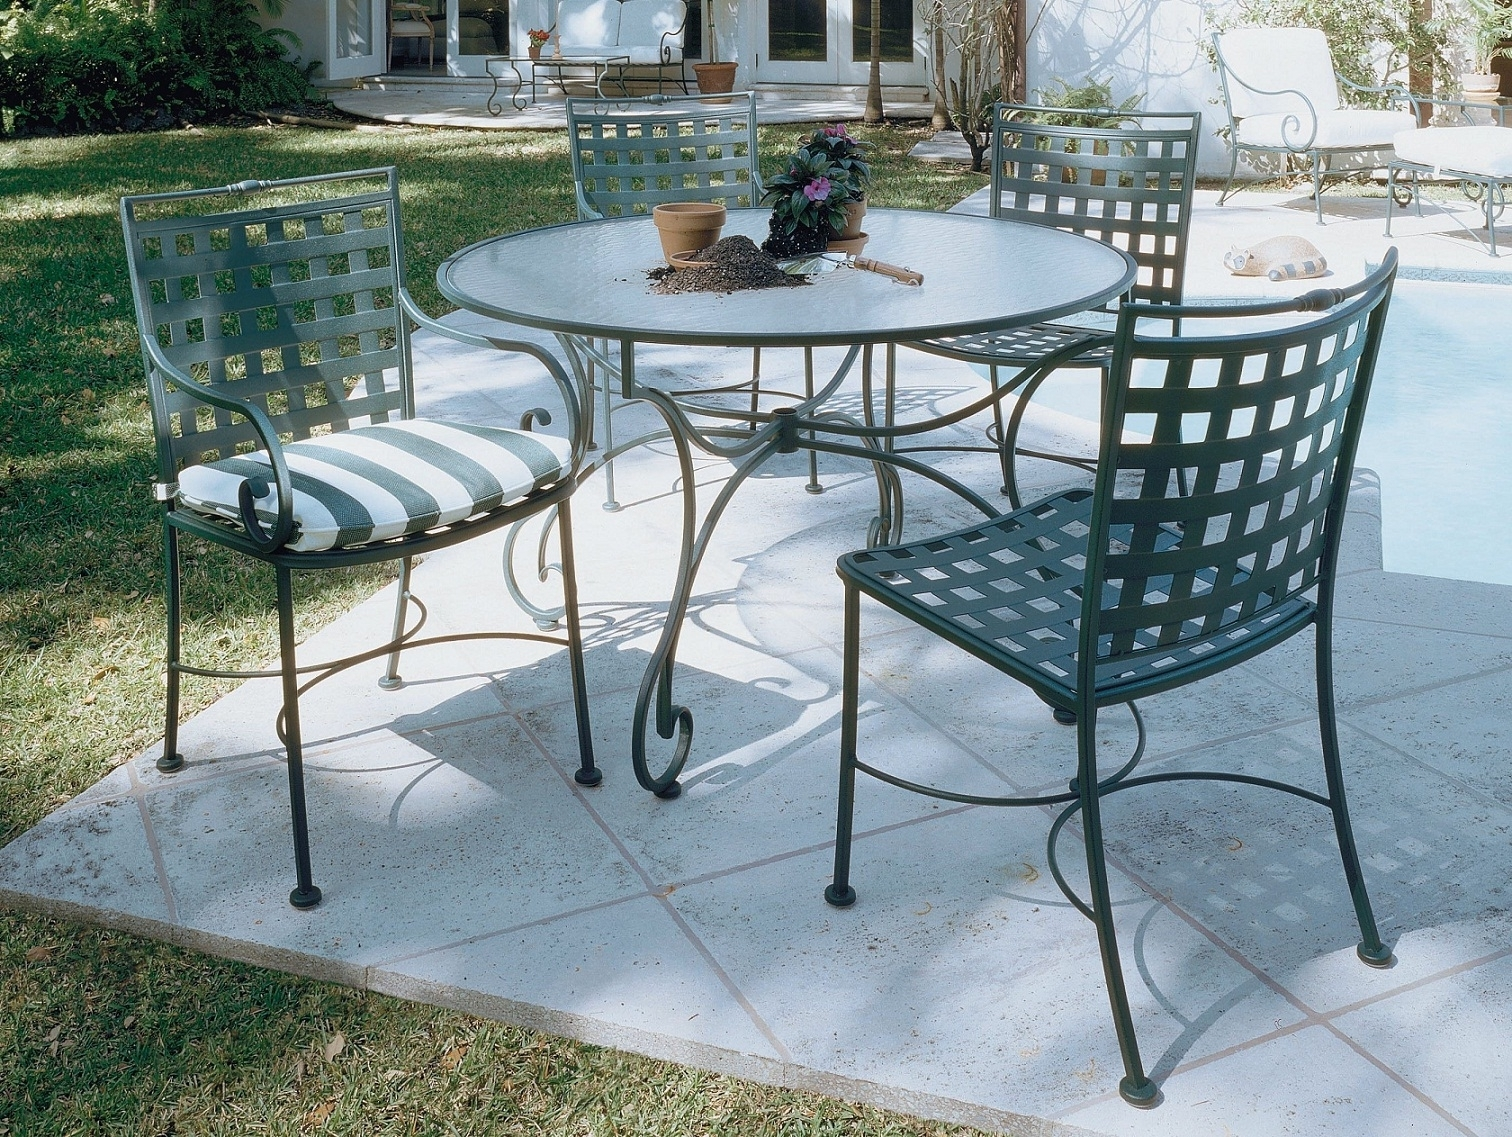 Fashionable Lovely Wrought Iron Patio Tables Outdoor Wrought Iron Patio For Wrought Iron Patio Conversation Sets (View 2 of 20)